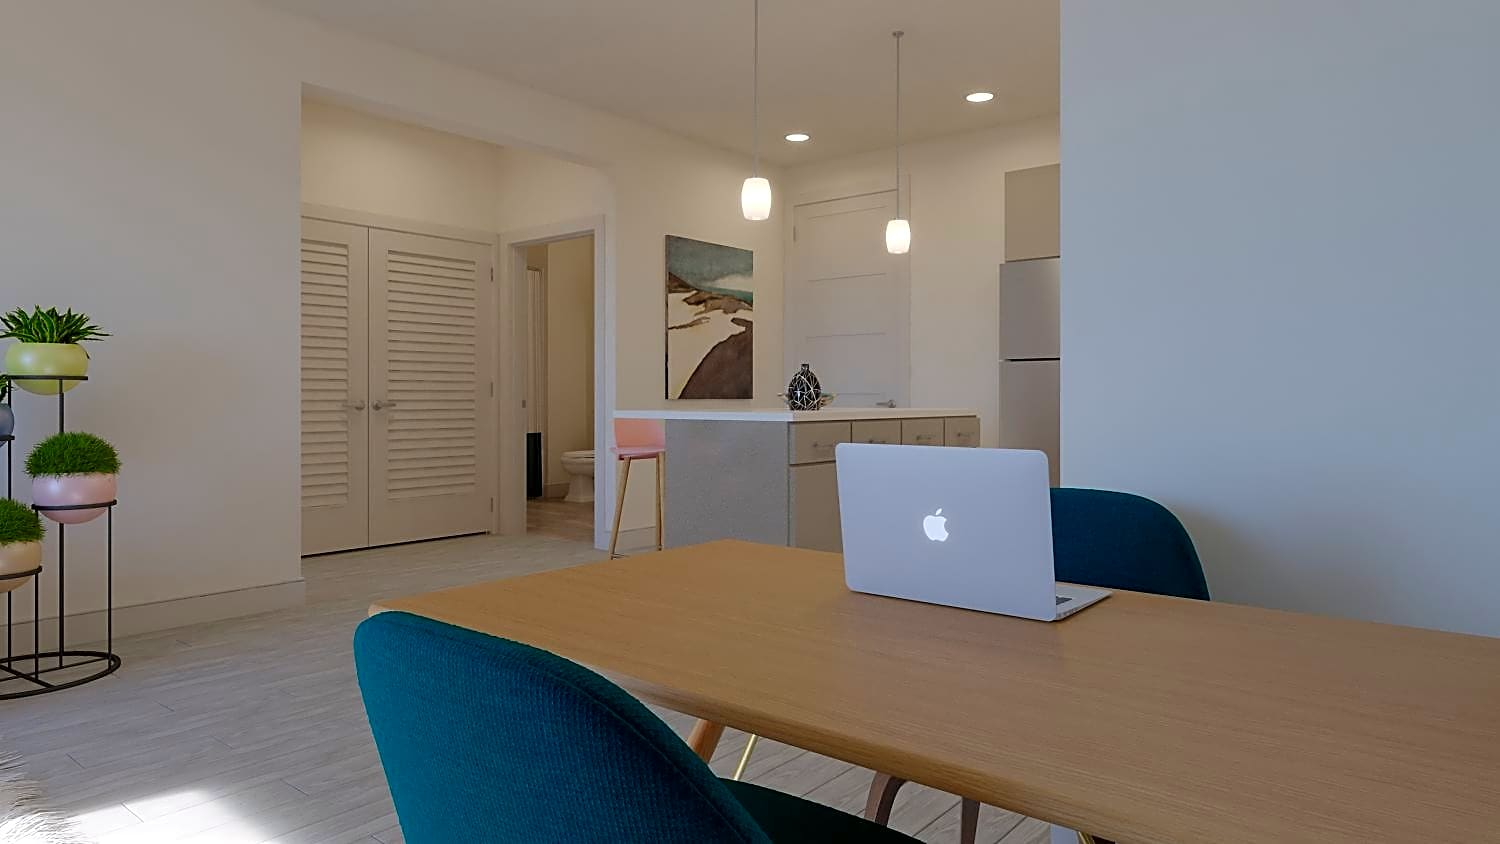 Dining spaces can also double as a home office